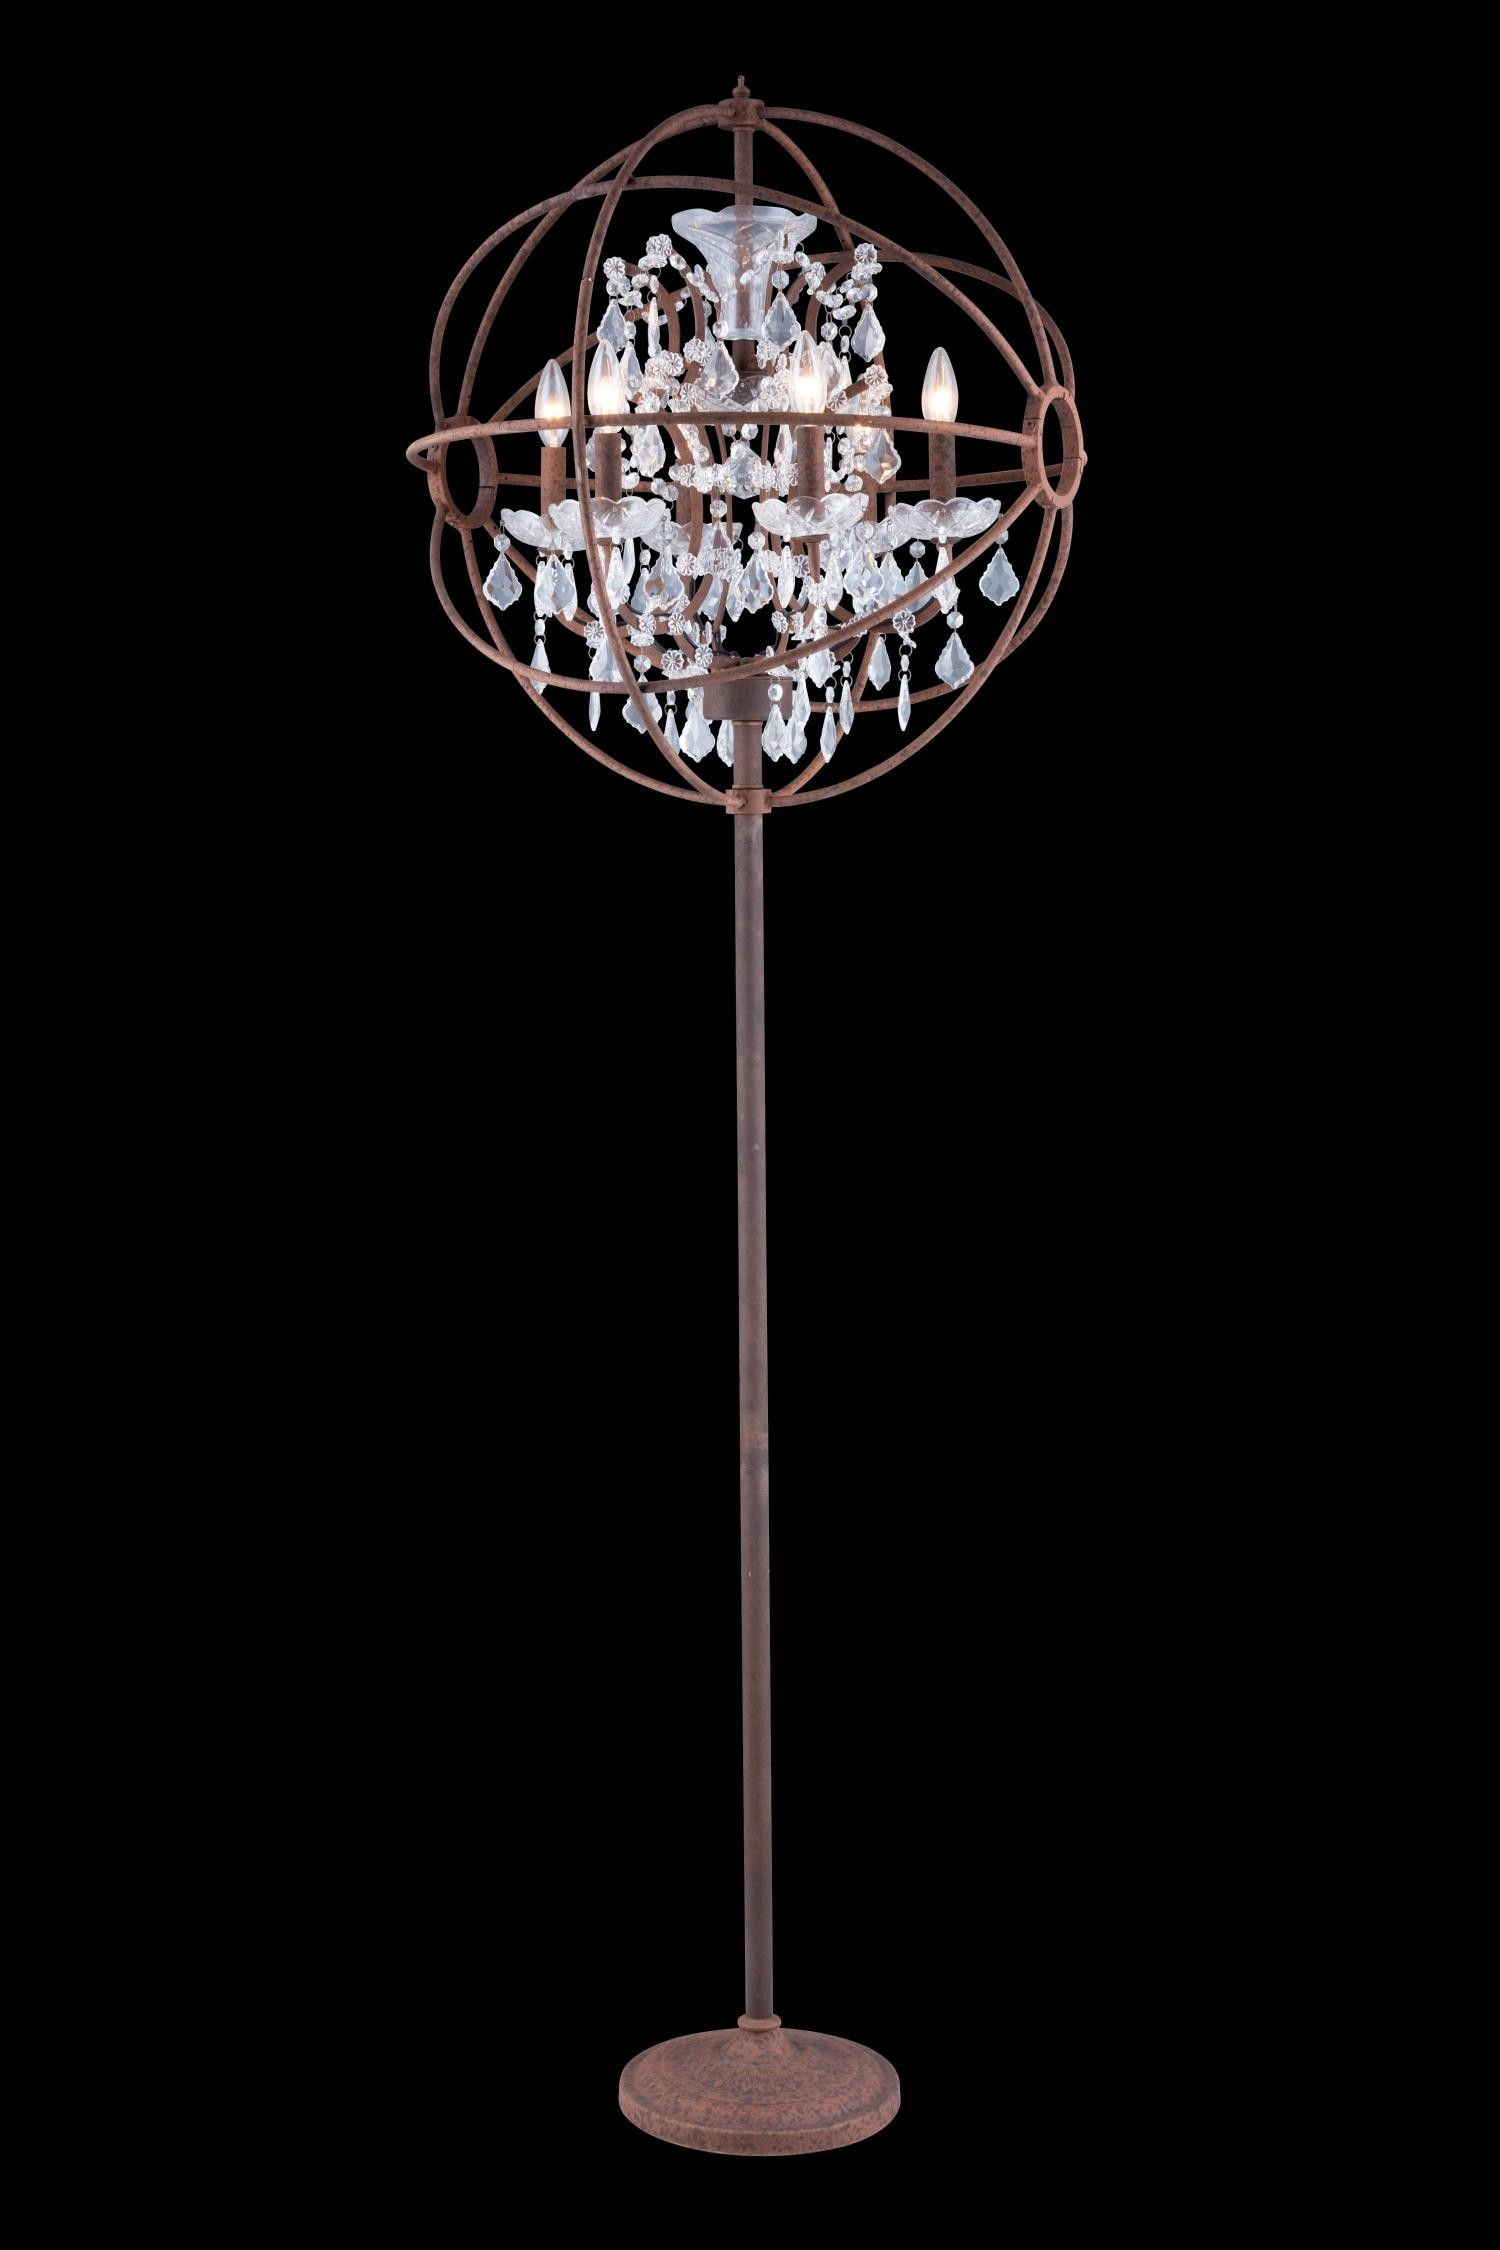 Lights Tall Chandelier Lamp Crystal Floor Lamp Horchow Lamps Sale With Regard To Chandelier Standing Lamps (View 18 of 25)